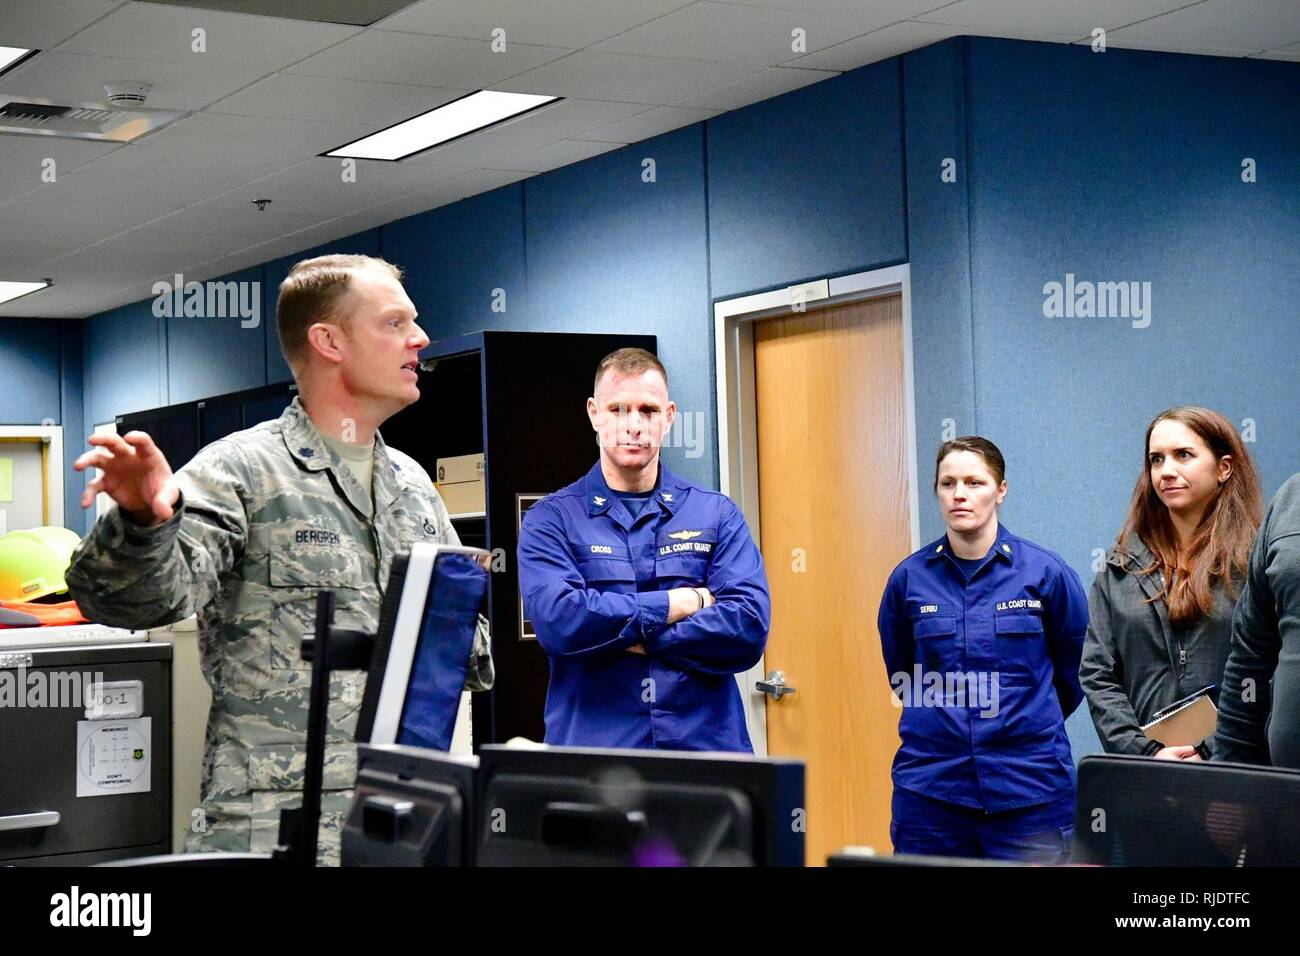 Lt. Col. Brian Bergren, 225th Air Defense Squadron director of operations, discusses lessons learned from Hurricane Harvey recovery efforts with Capt. Sean Cross, U.S. Coast Guard 13th District chief of incident management, and Lt. Cmdr. Brook Serbu, U.S. Coast Guard 13th District command center chief. - Stock Image